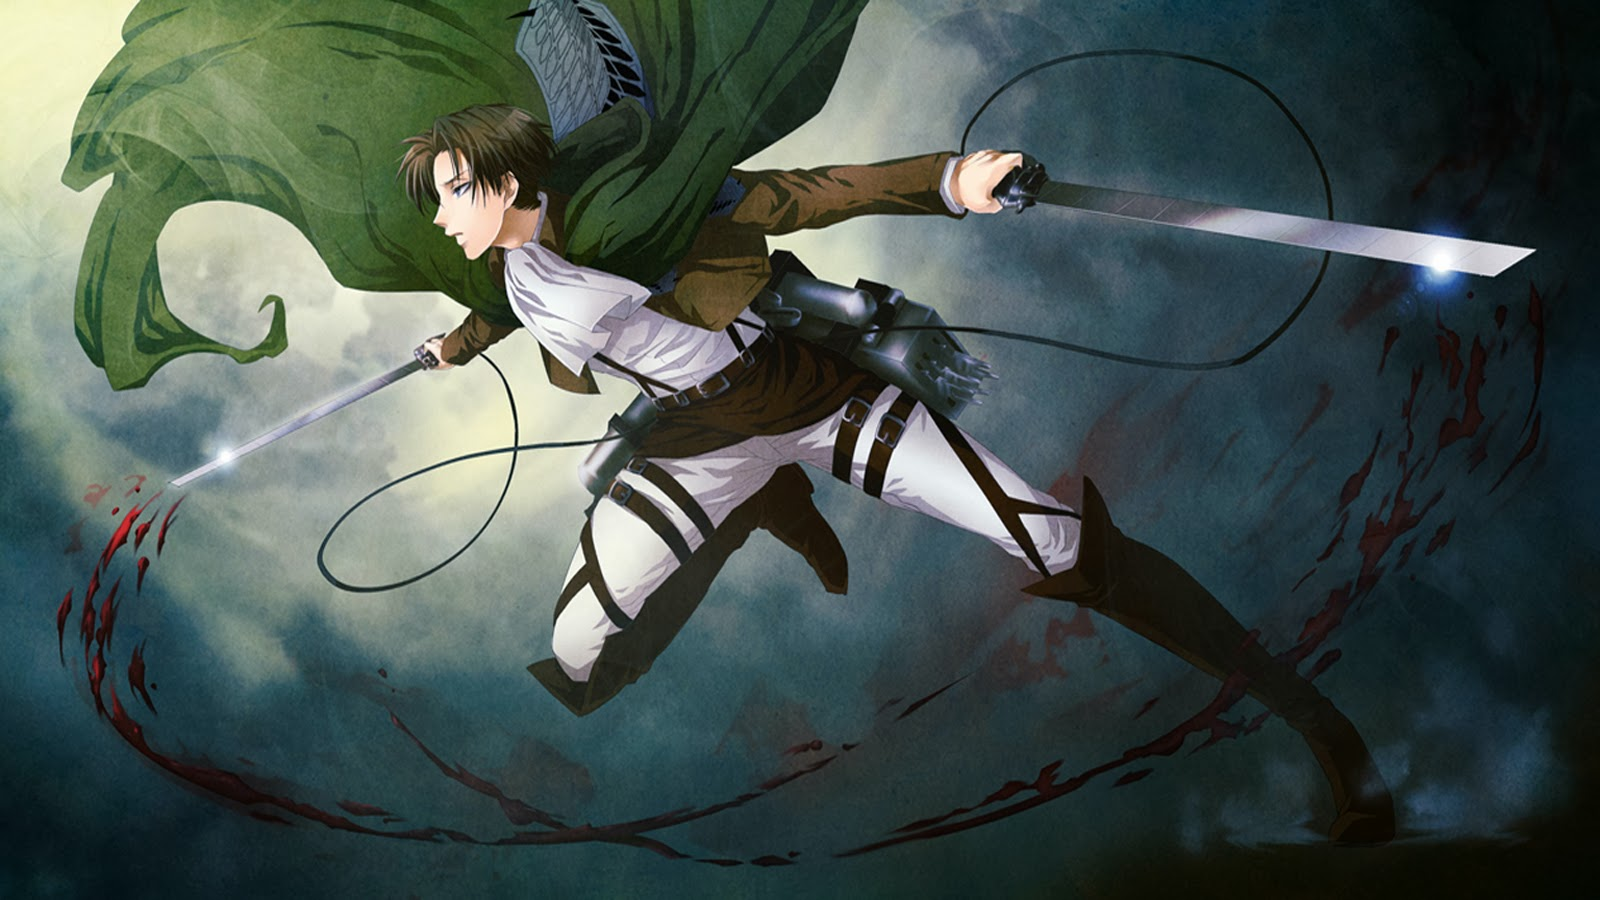 Anime Attack On Titan Captain Levi Anime Wallpapers